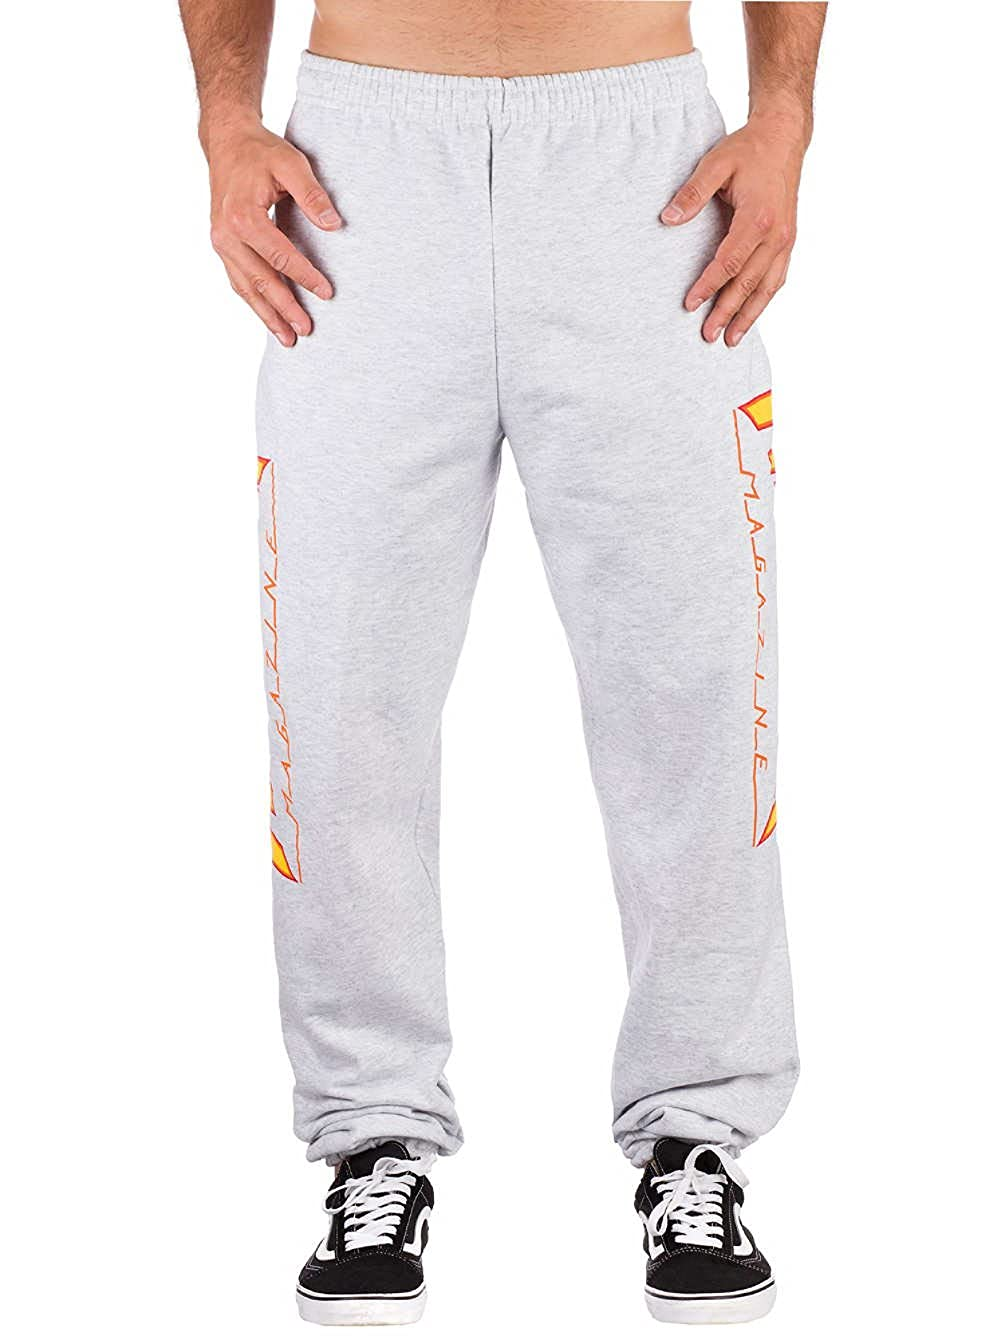 Thrasher Sweatpant Mens 317004